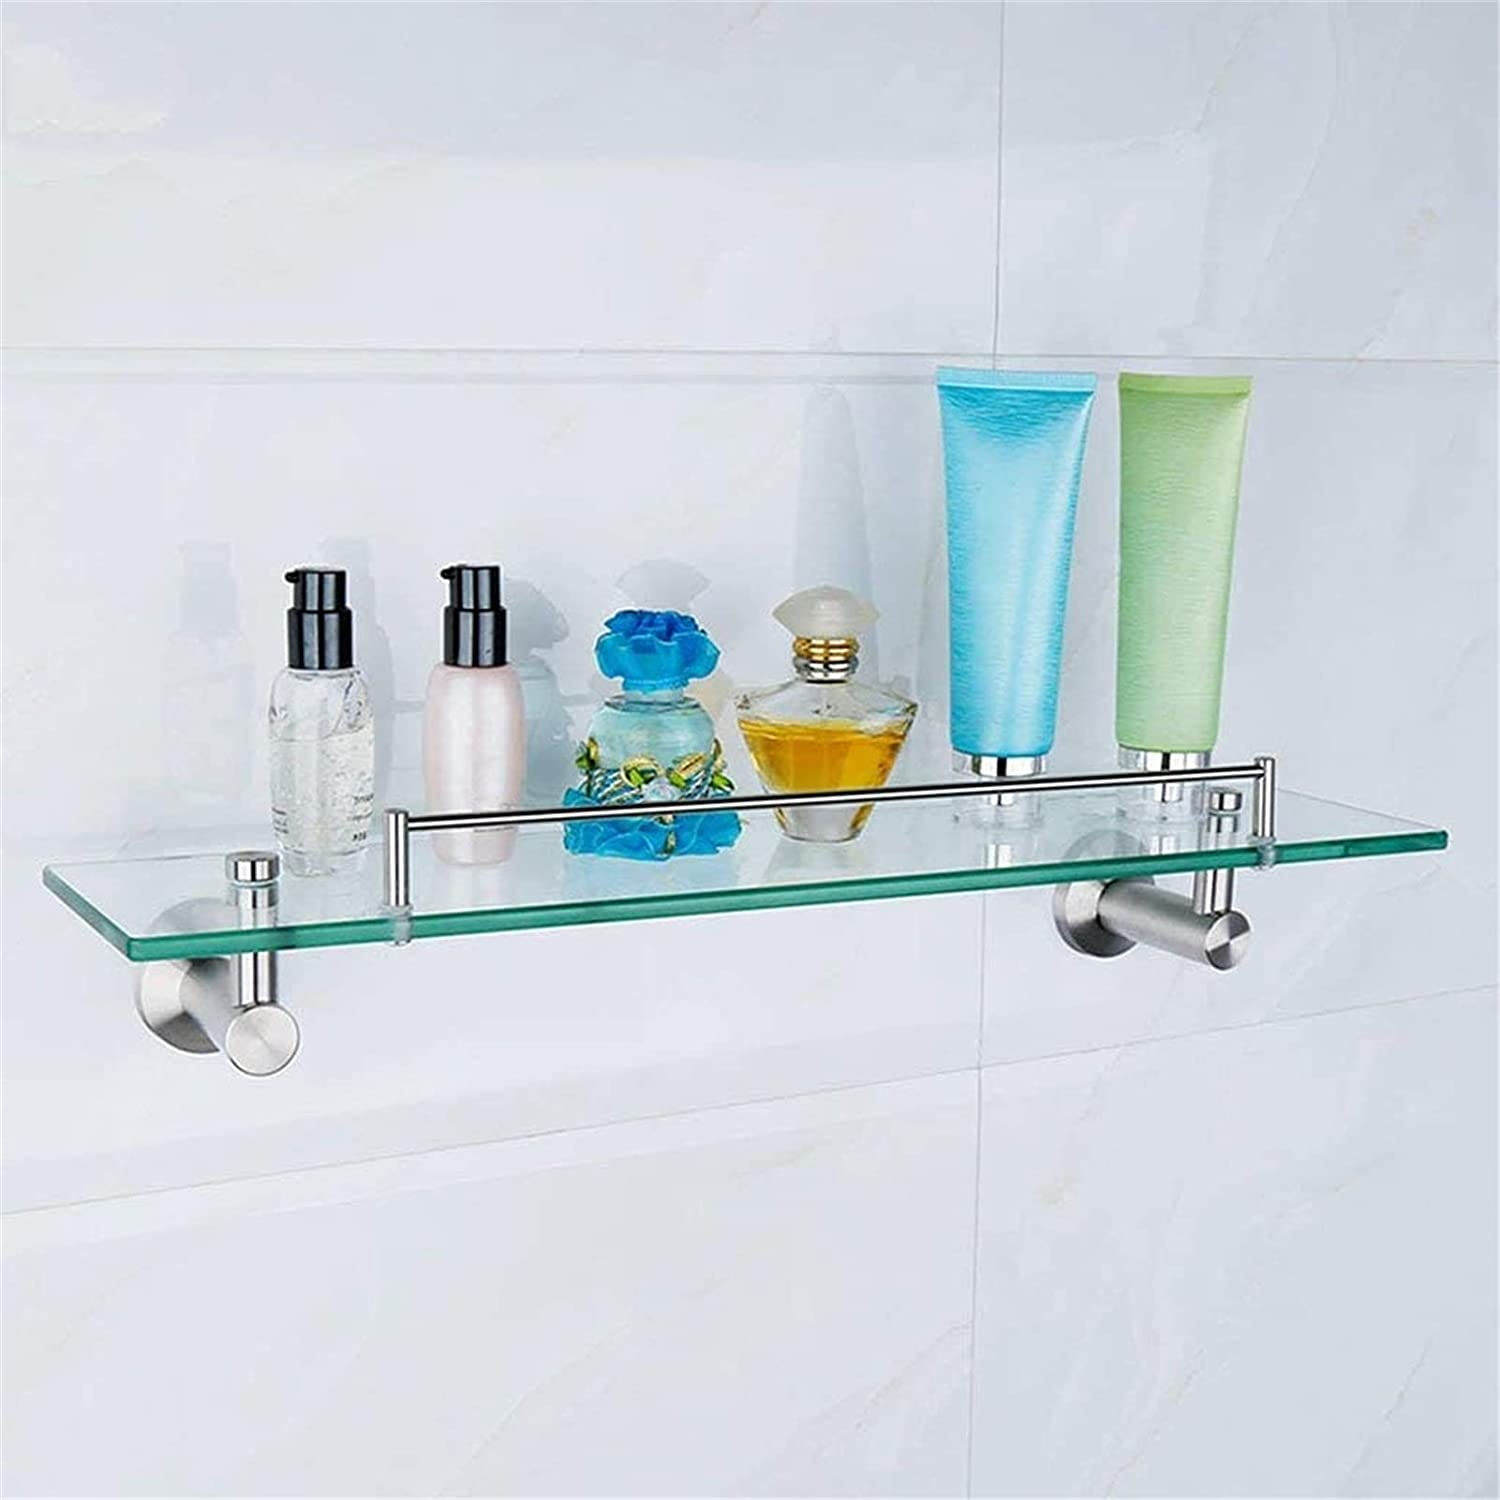 Shower Shelves Tempered Glass Shelf quality assurance Bathroom with Ranking TOP5 8mm Thic